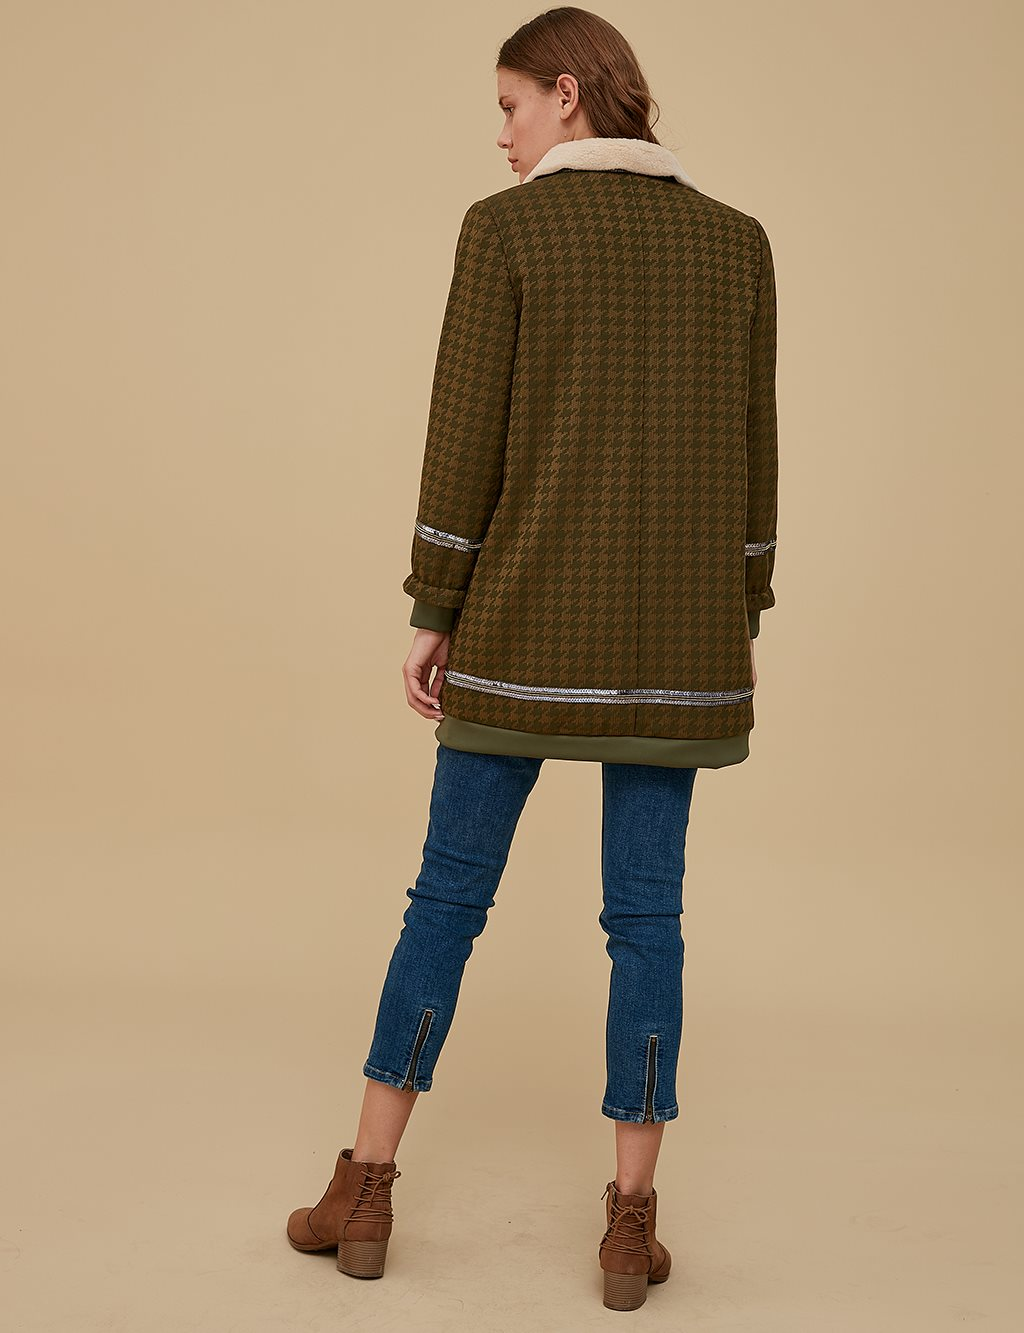 KYR Patterned Jacket A9 73012 Khaki